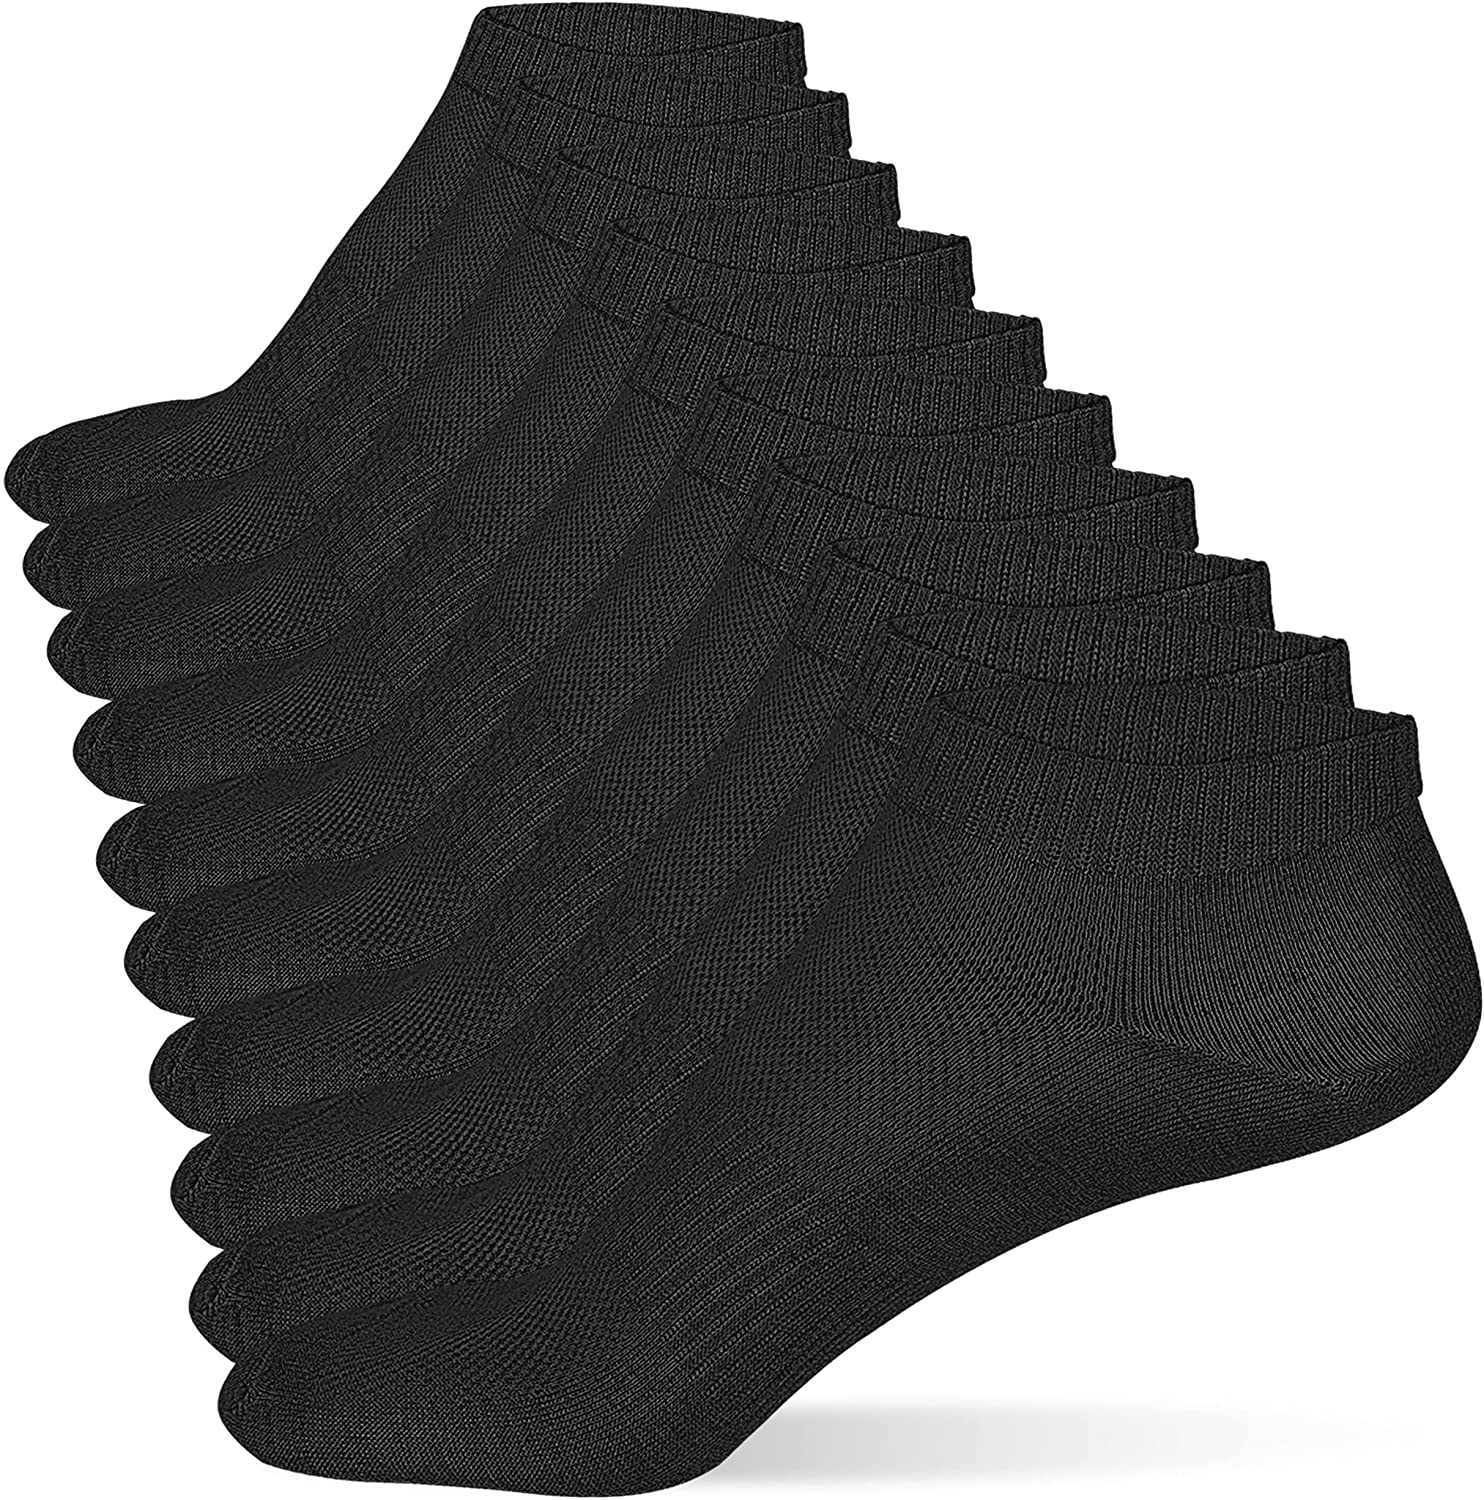 CoziFoot 10 Pairs Women Ankle Socks Quality inspection Athletic Charlotte Mall Low So Cut Soft